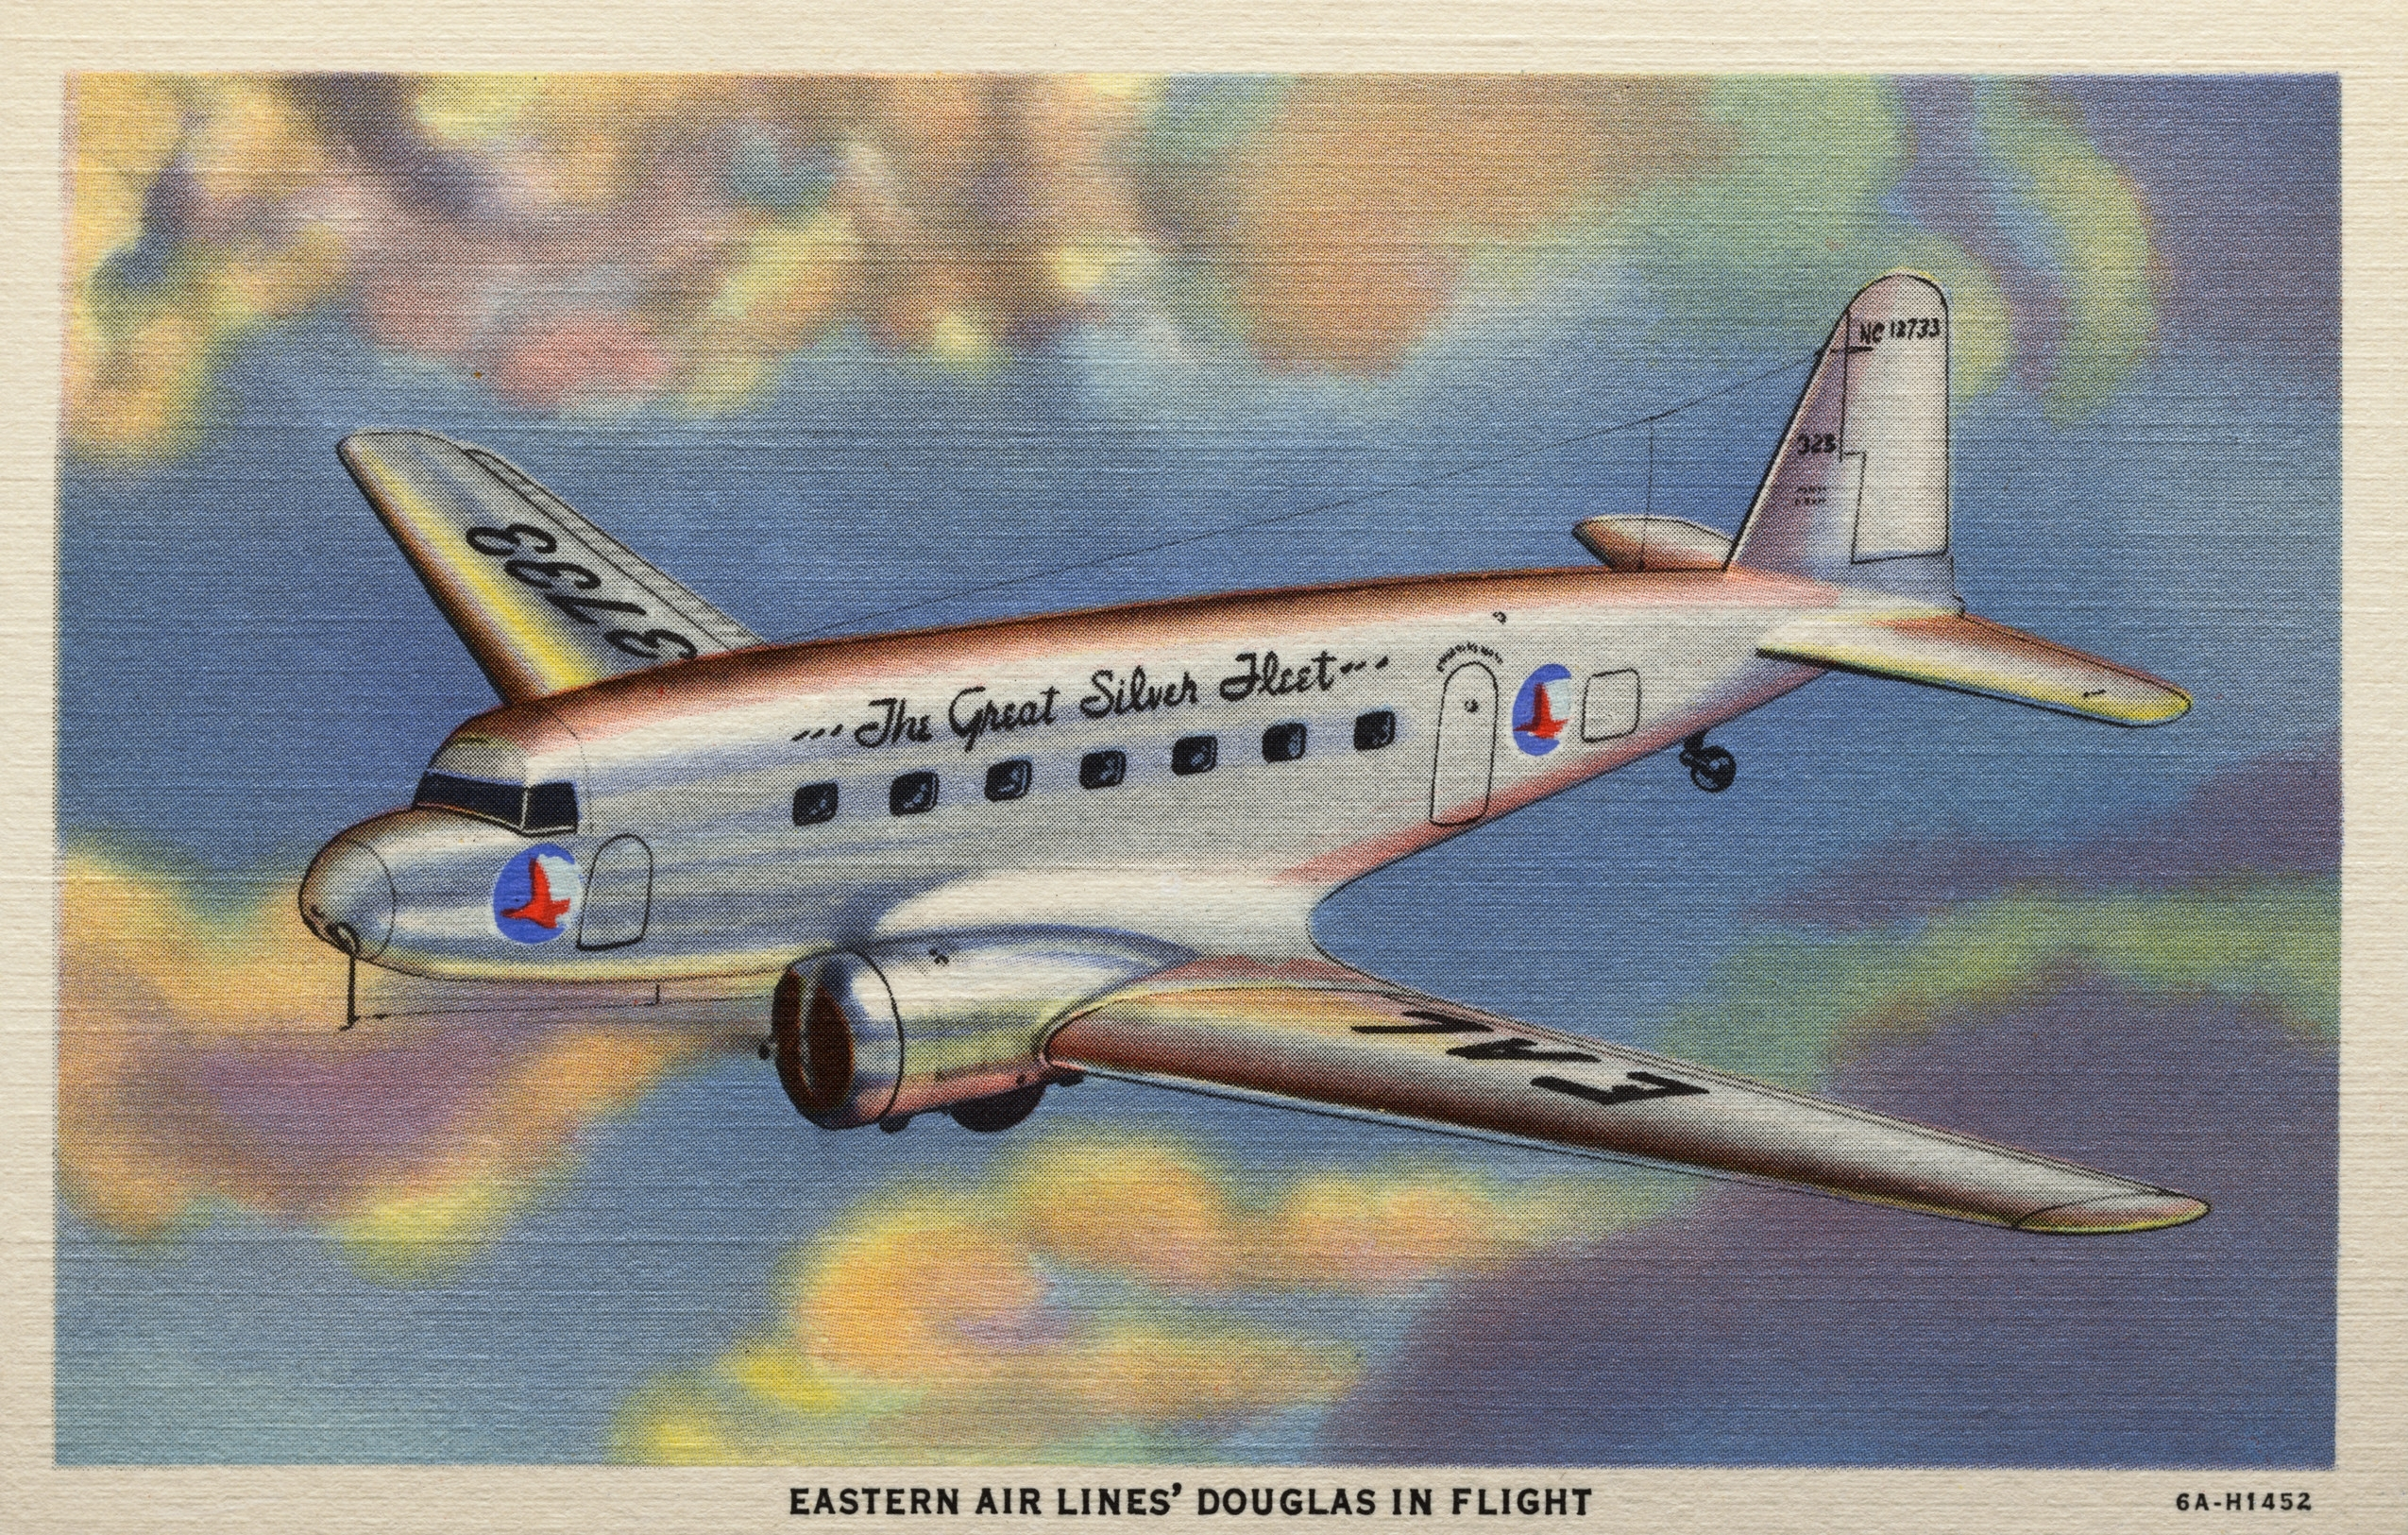 Eastern Airlines Douglas Plane. ca. 1936, USA, EASTERN AIR LINES' DOUGLAS IN FLIGHT. Travel at three miles a minute in easy-chai